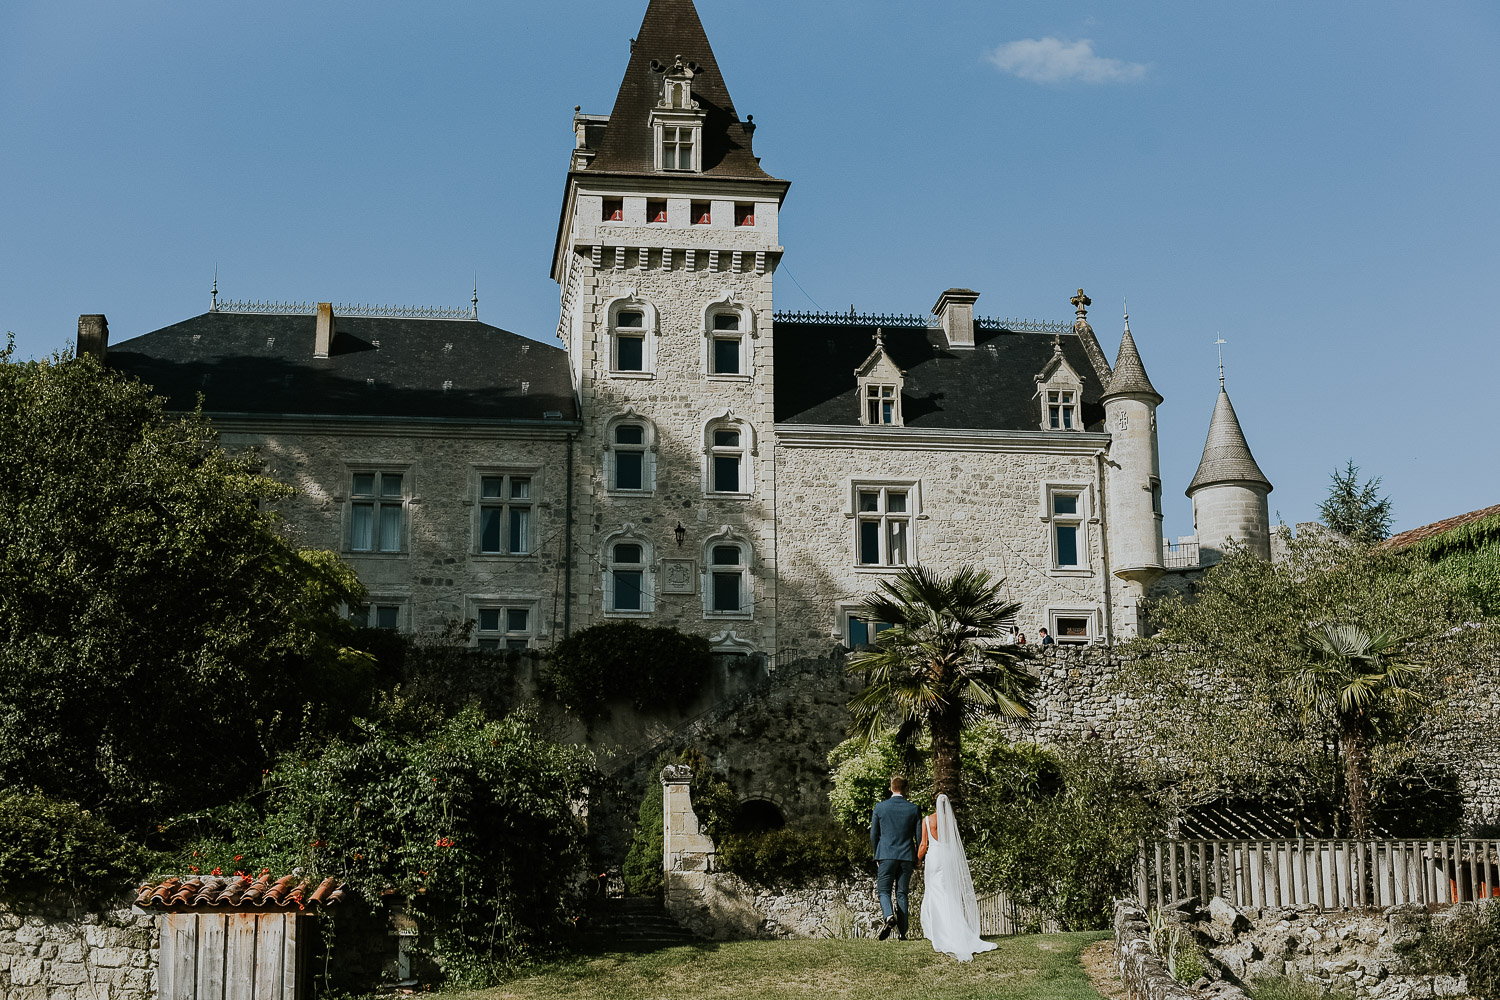 chateau_de_lisse_gers_gascony_south_west_france_family_wedding_katy_webb_photography_UK68